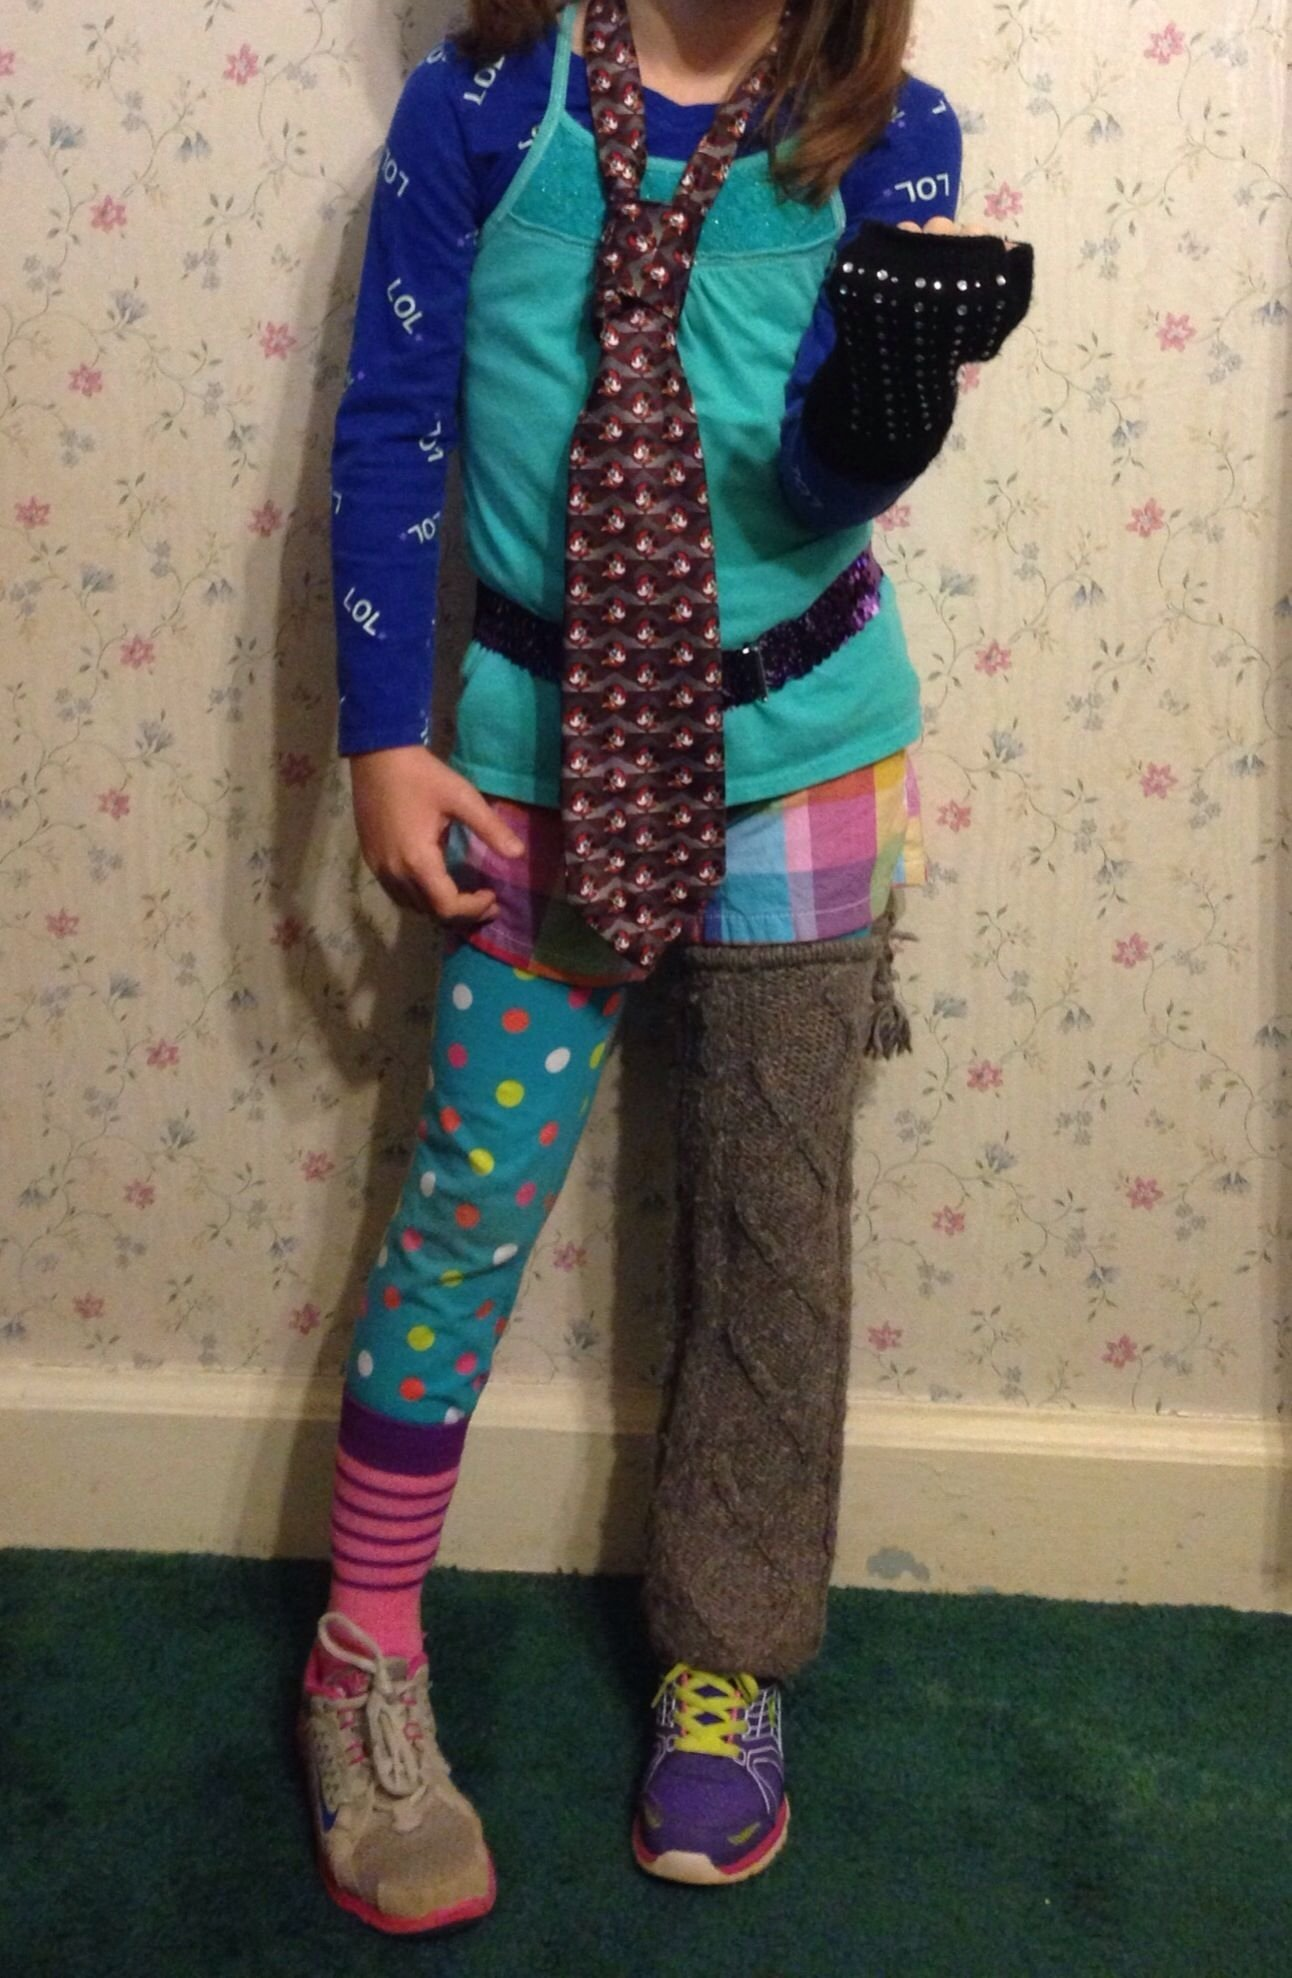 10 Attractive Ideas For Wacky Tacky Day wacky tacky day 4 emma pinterest school spirit week ideas and 1 2020